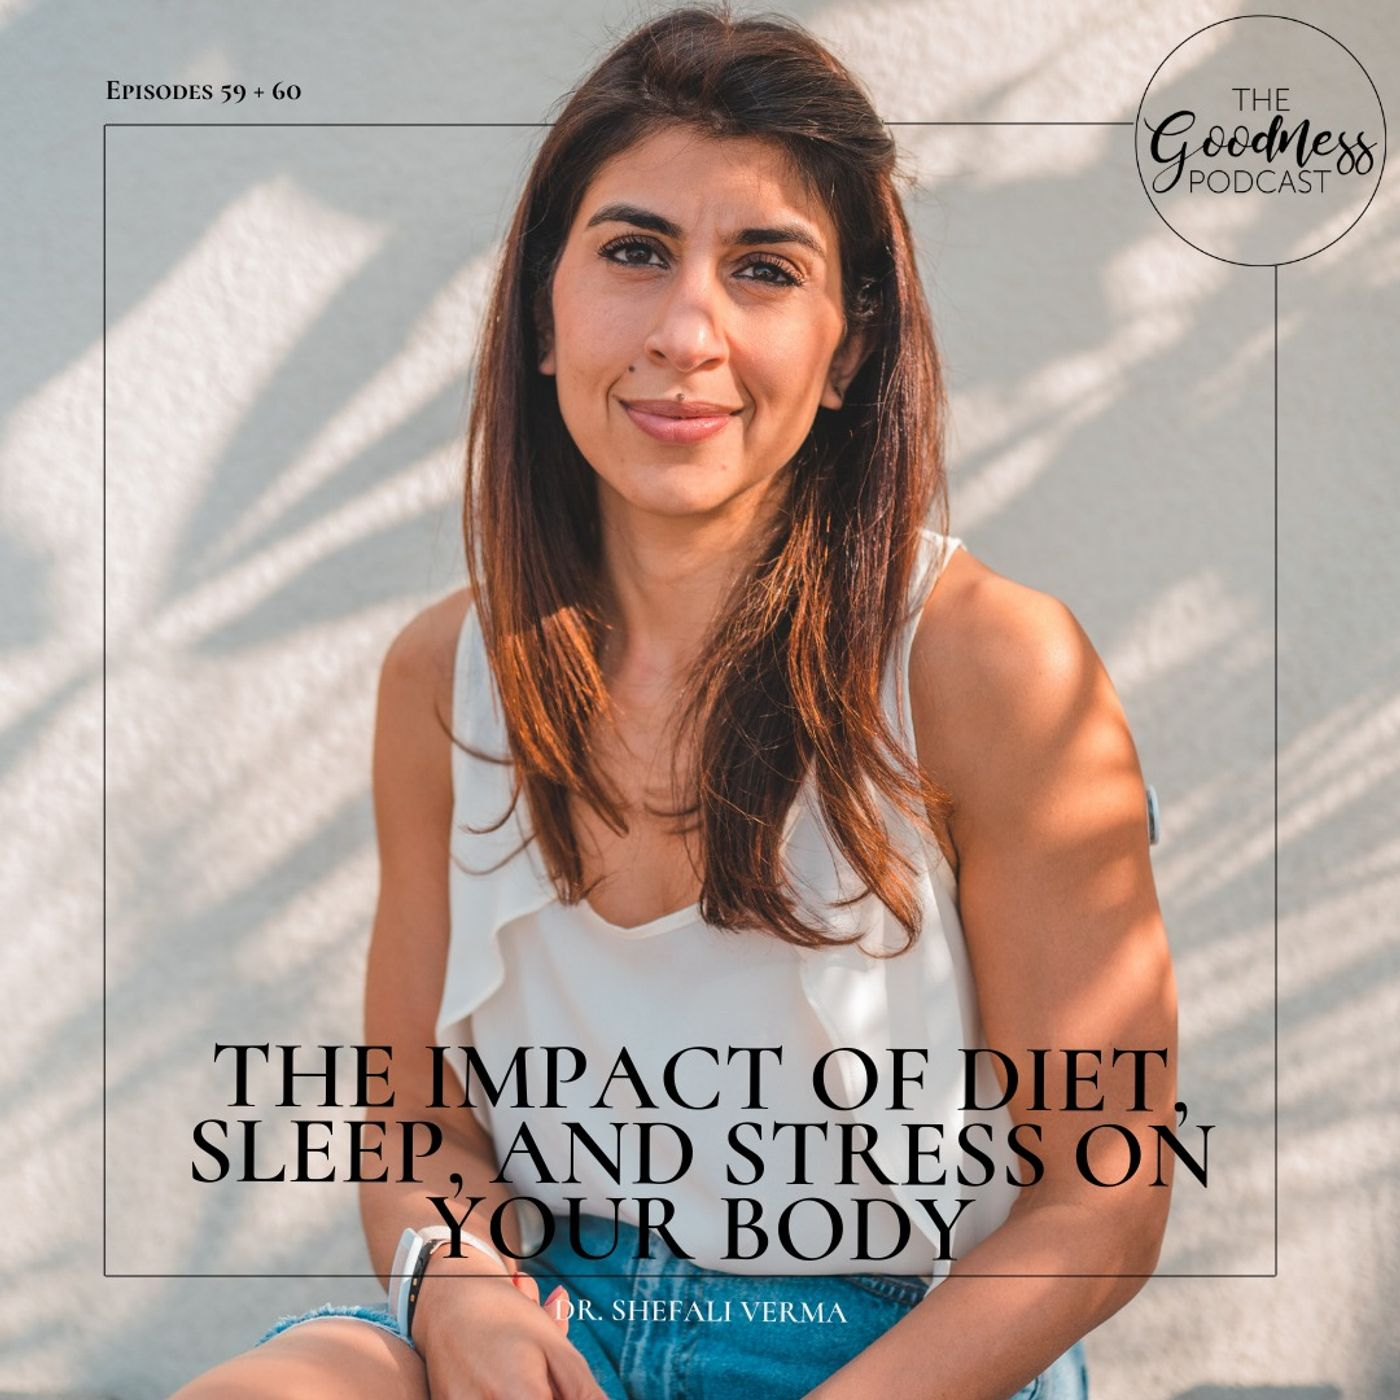 Dr. Shefali Verma: The Impact of Diet, Sleep, and Stress on Your Body – Part 2